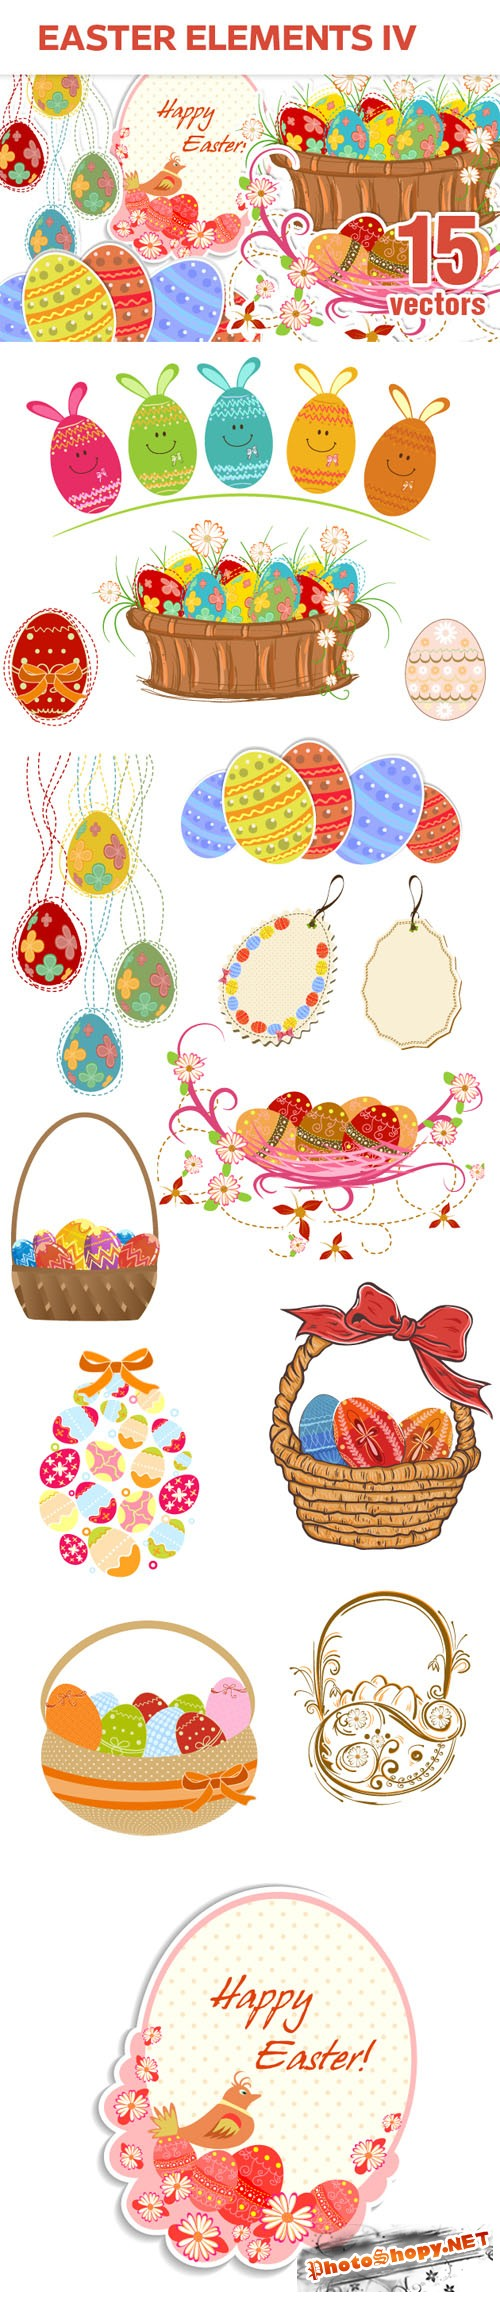 Designtnt - Easter Elements Vector Set 4